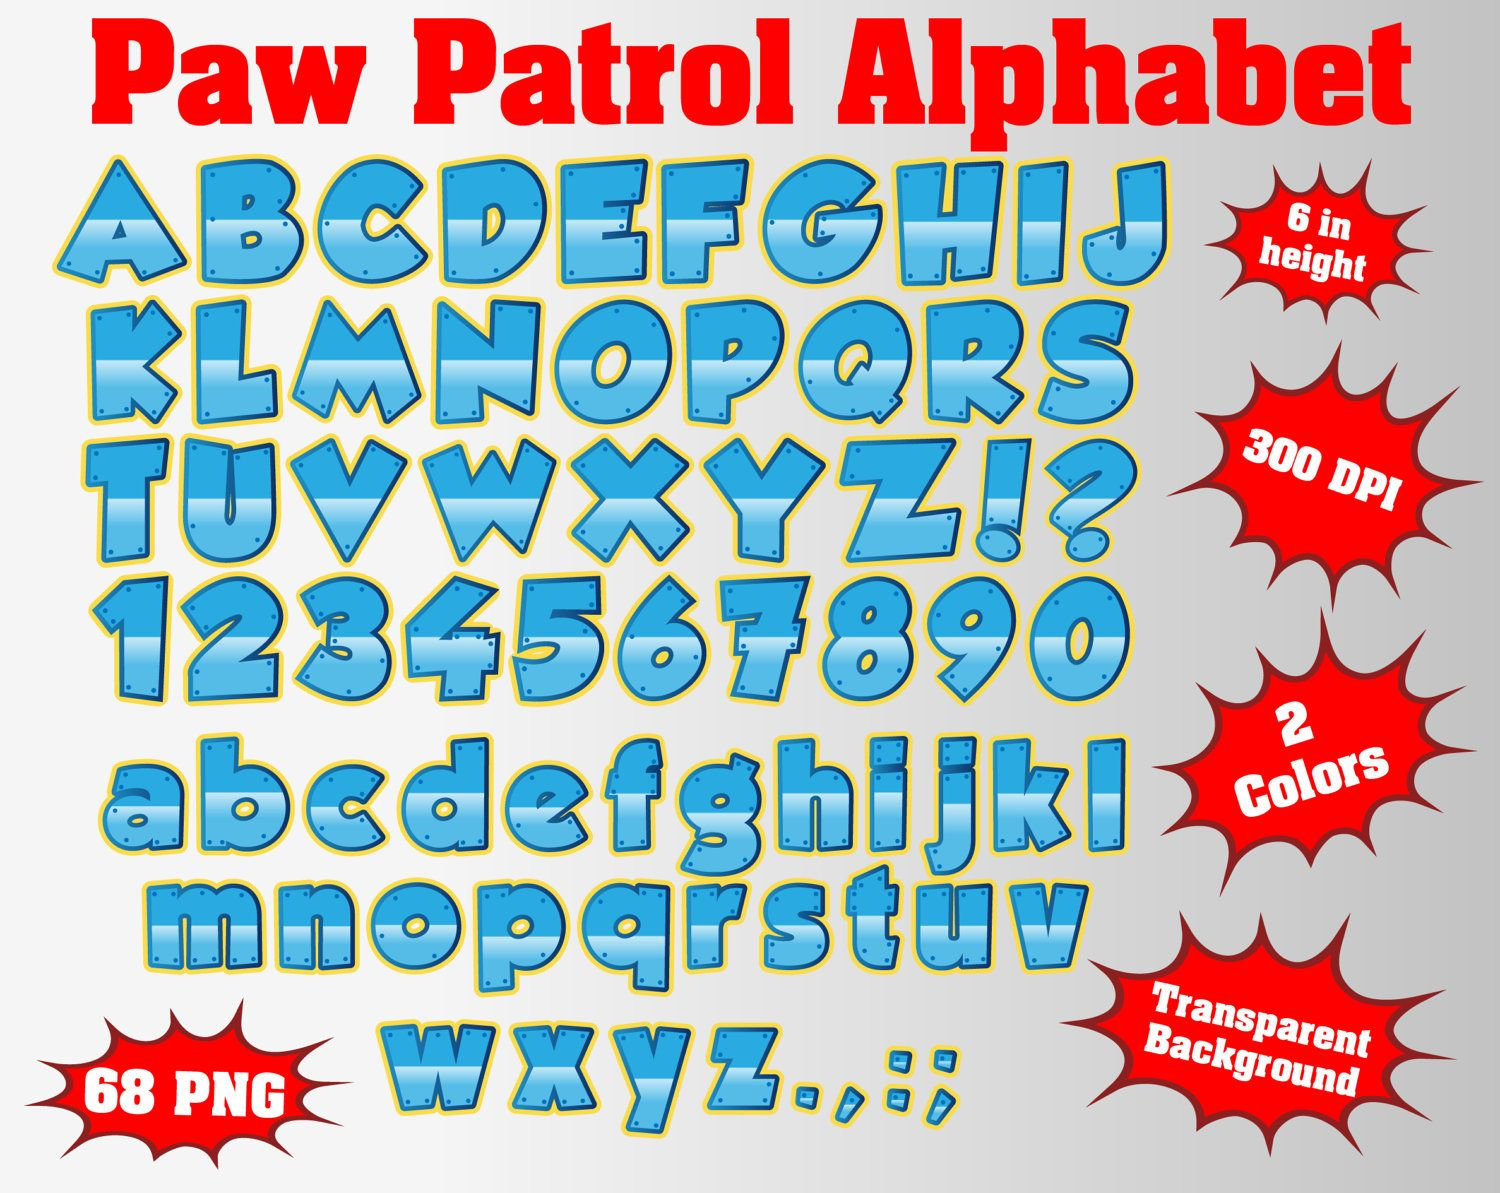 Paw Full Patrol Alphabet Numbers And Symbols 512 Png Svg 300